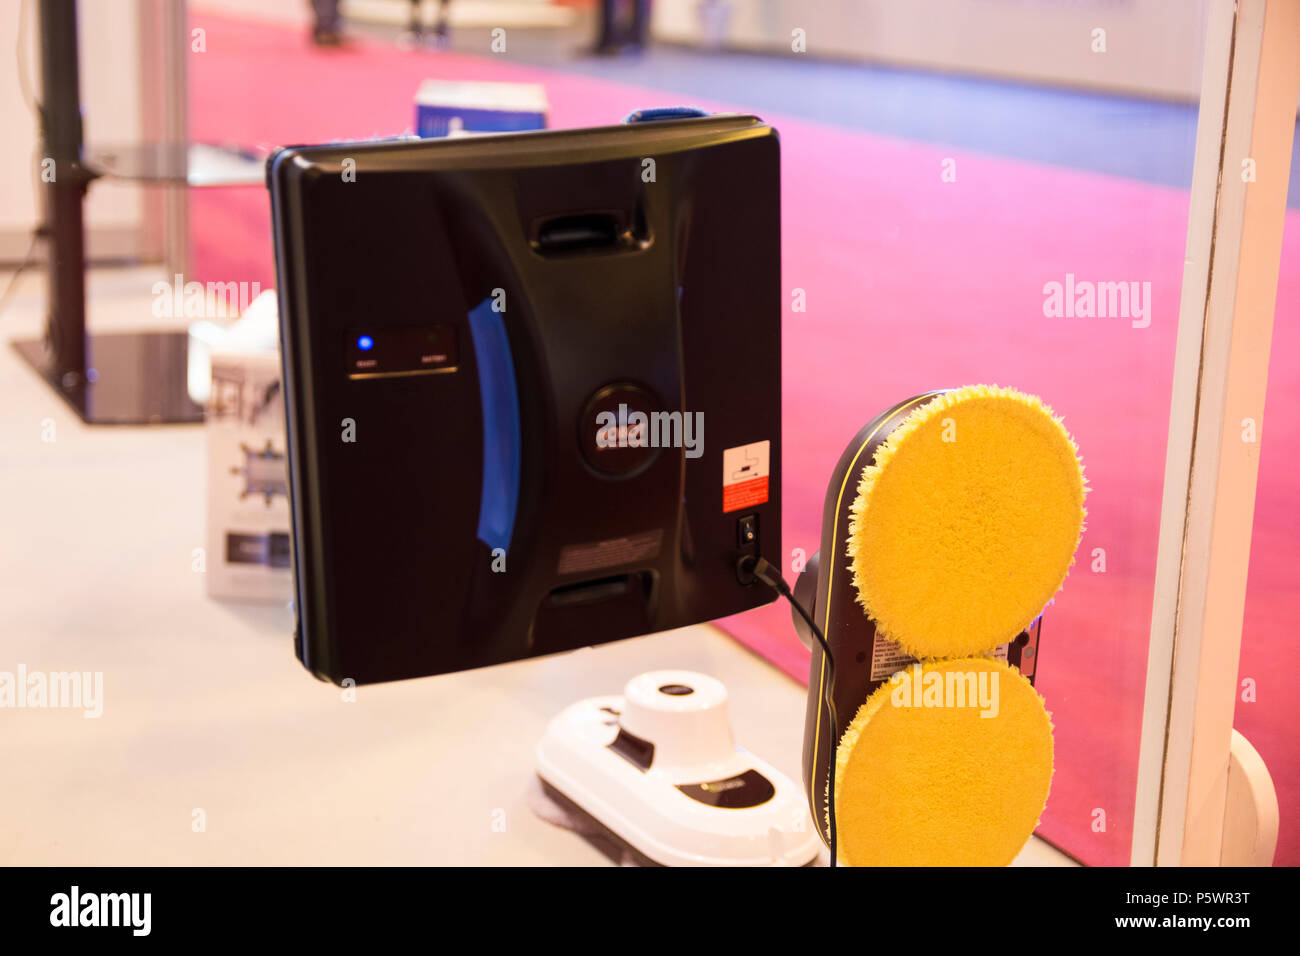 HOBOT 288 Window cleaner robot from Smartbot company, cleanning an office window  in GR-EX (Global Robot Expo). - Stock Image